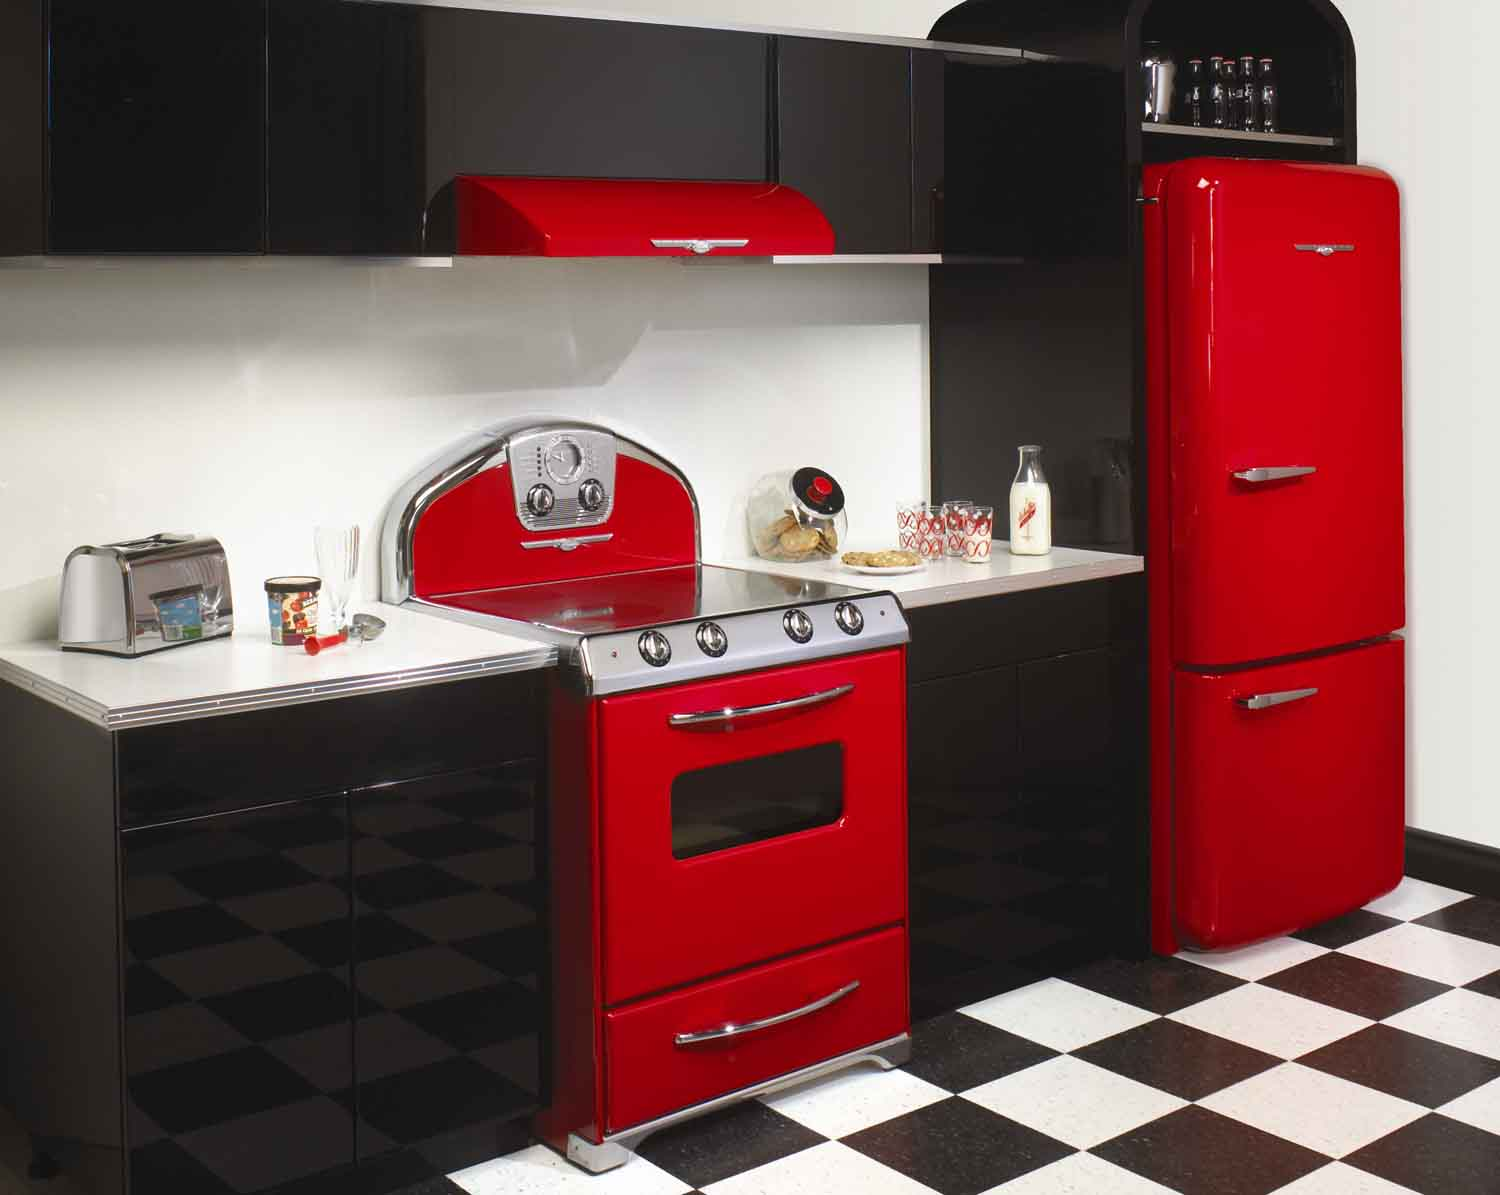 The Daily Tubber - Clawfoot Tub Blog: 1950's Kitchen